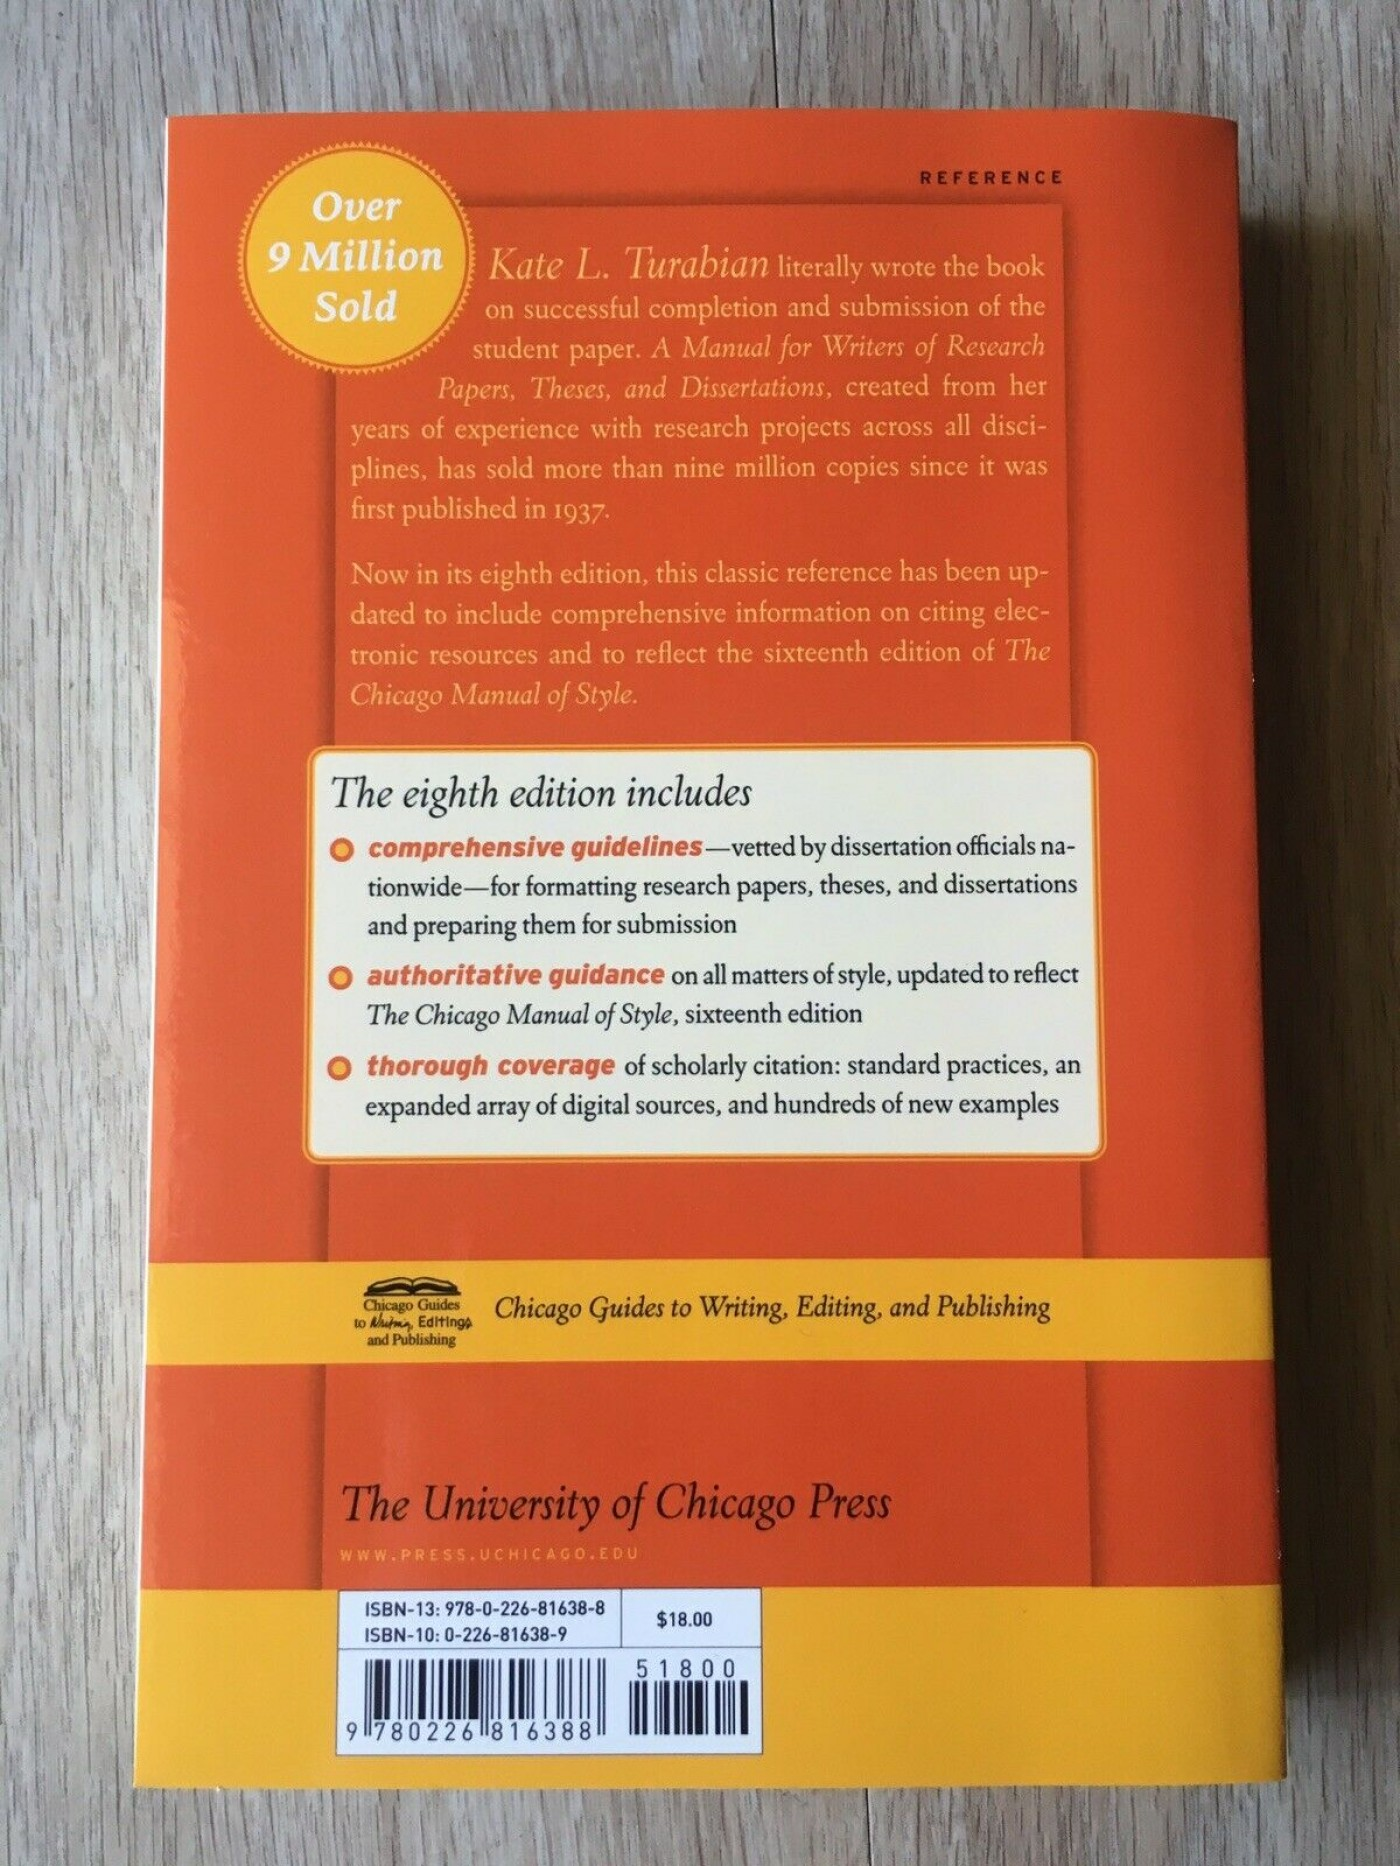 011 Research Paper Manual For Writers Of Papers Theses And Dissertations S Sensational A Ed. 8 8th Edition Ninth Pdf 1400